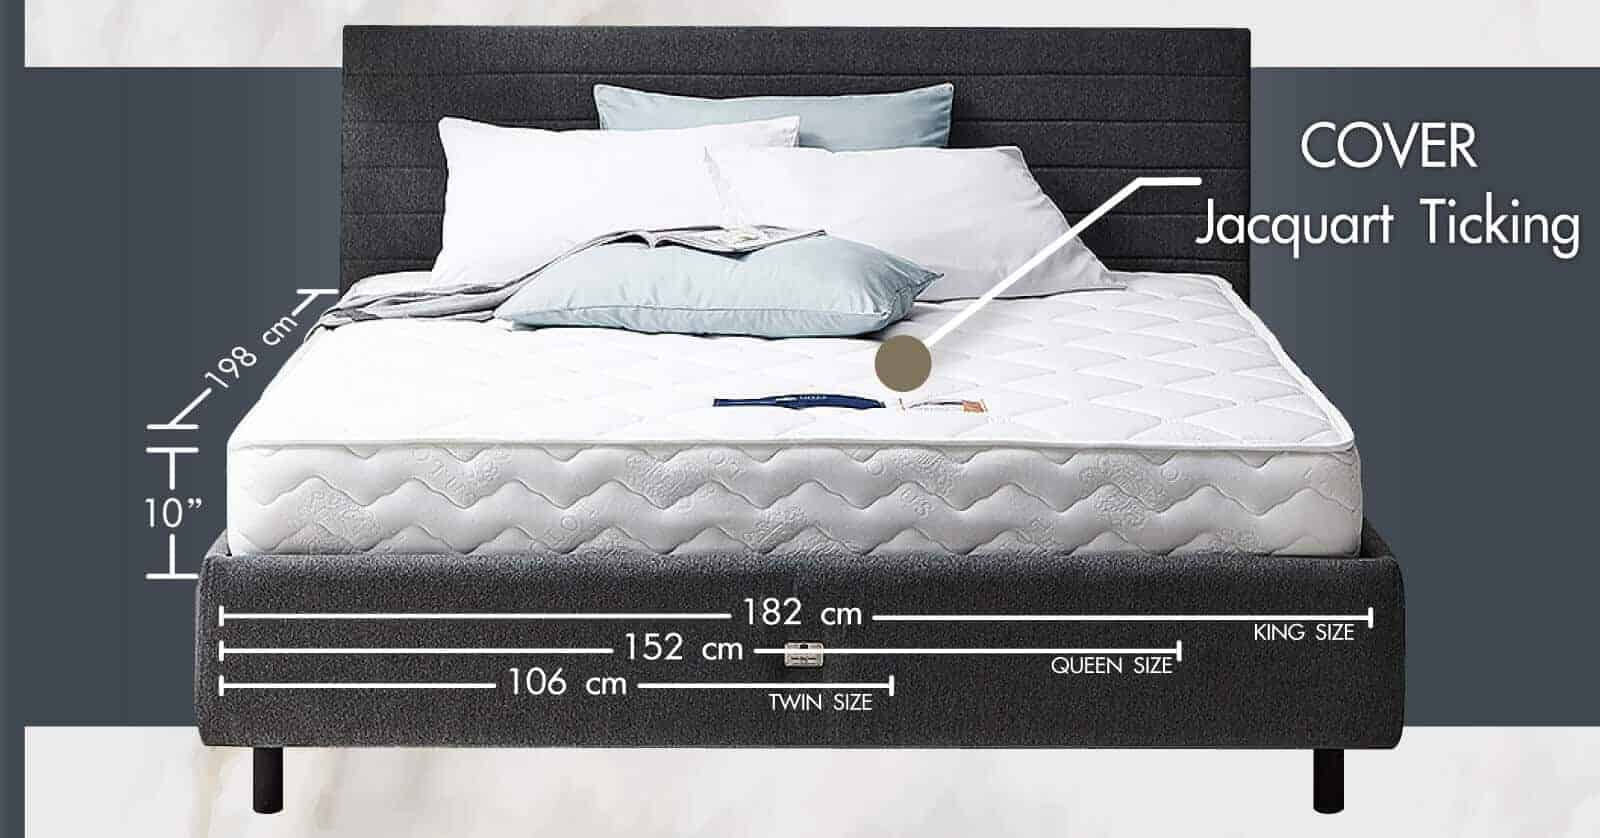 Lotus Foam Spring Mattress Delight – Ideal Firm Mattress – Thickness 10 inches – Warranty 10 years 9